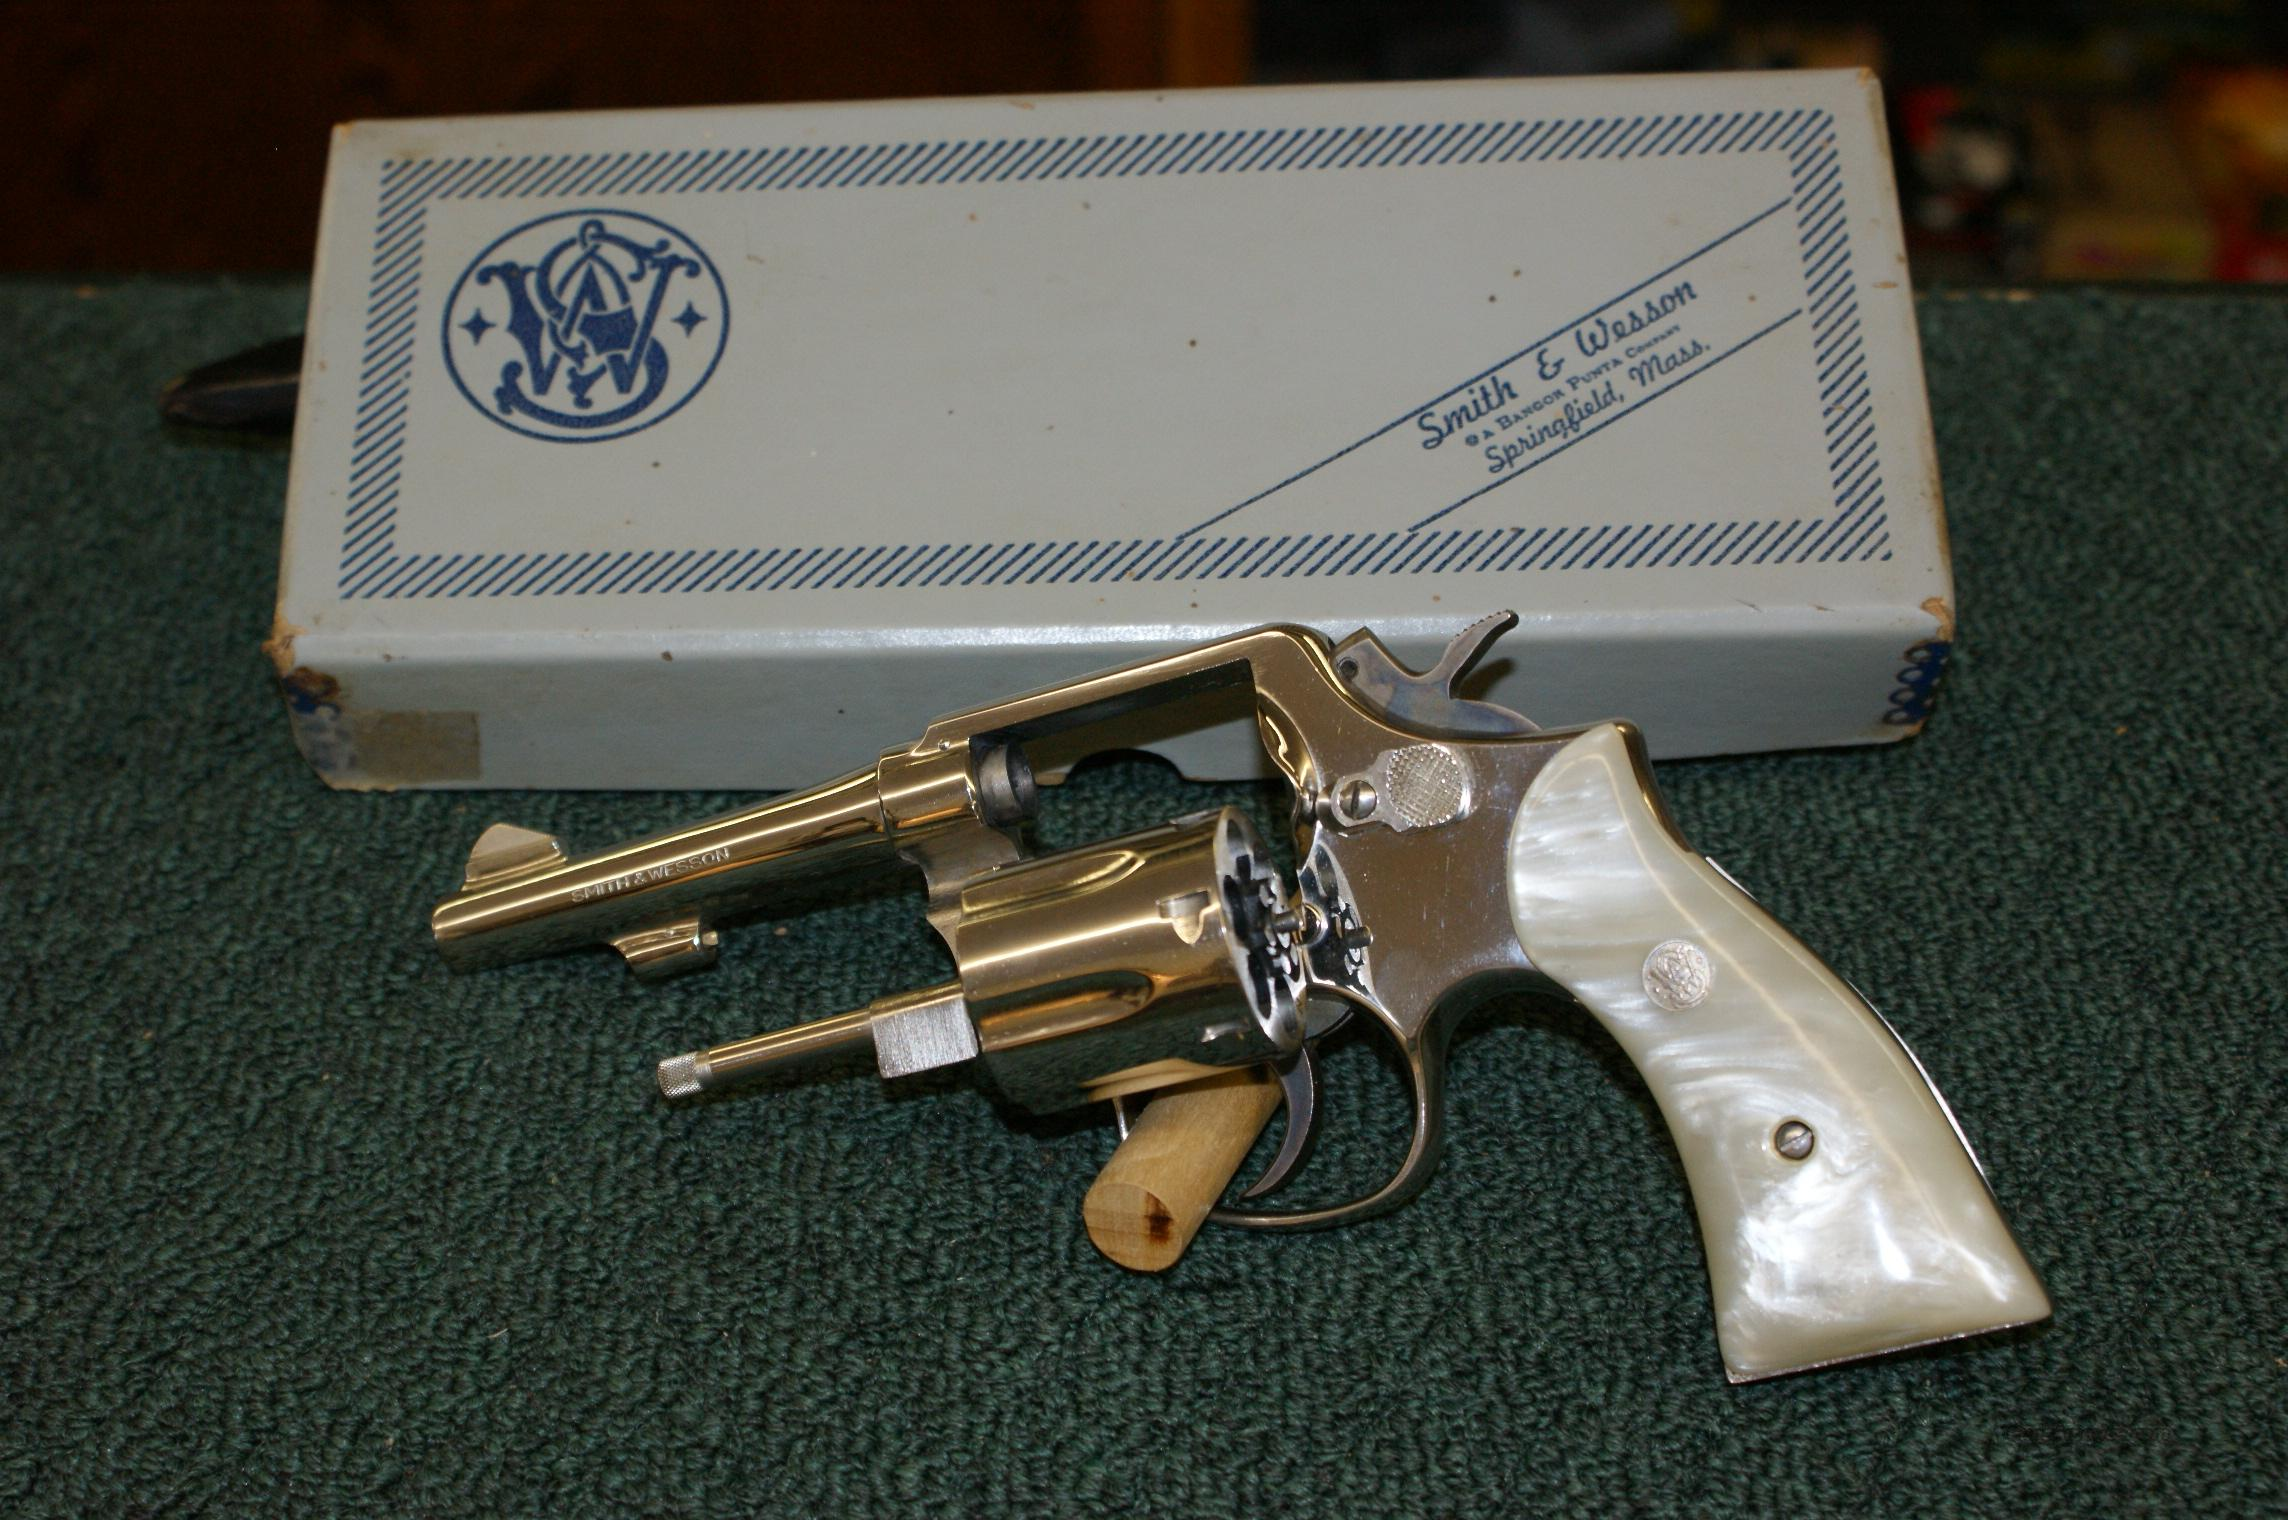 Smith & Wesson model 10-5  Nickel/Mother of Pearl  Guns > Pistols > Smith & Wesson Revolvers > Model 10